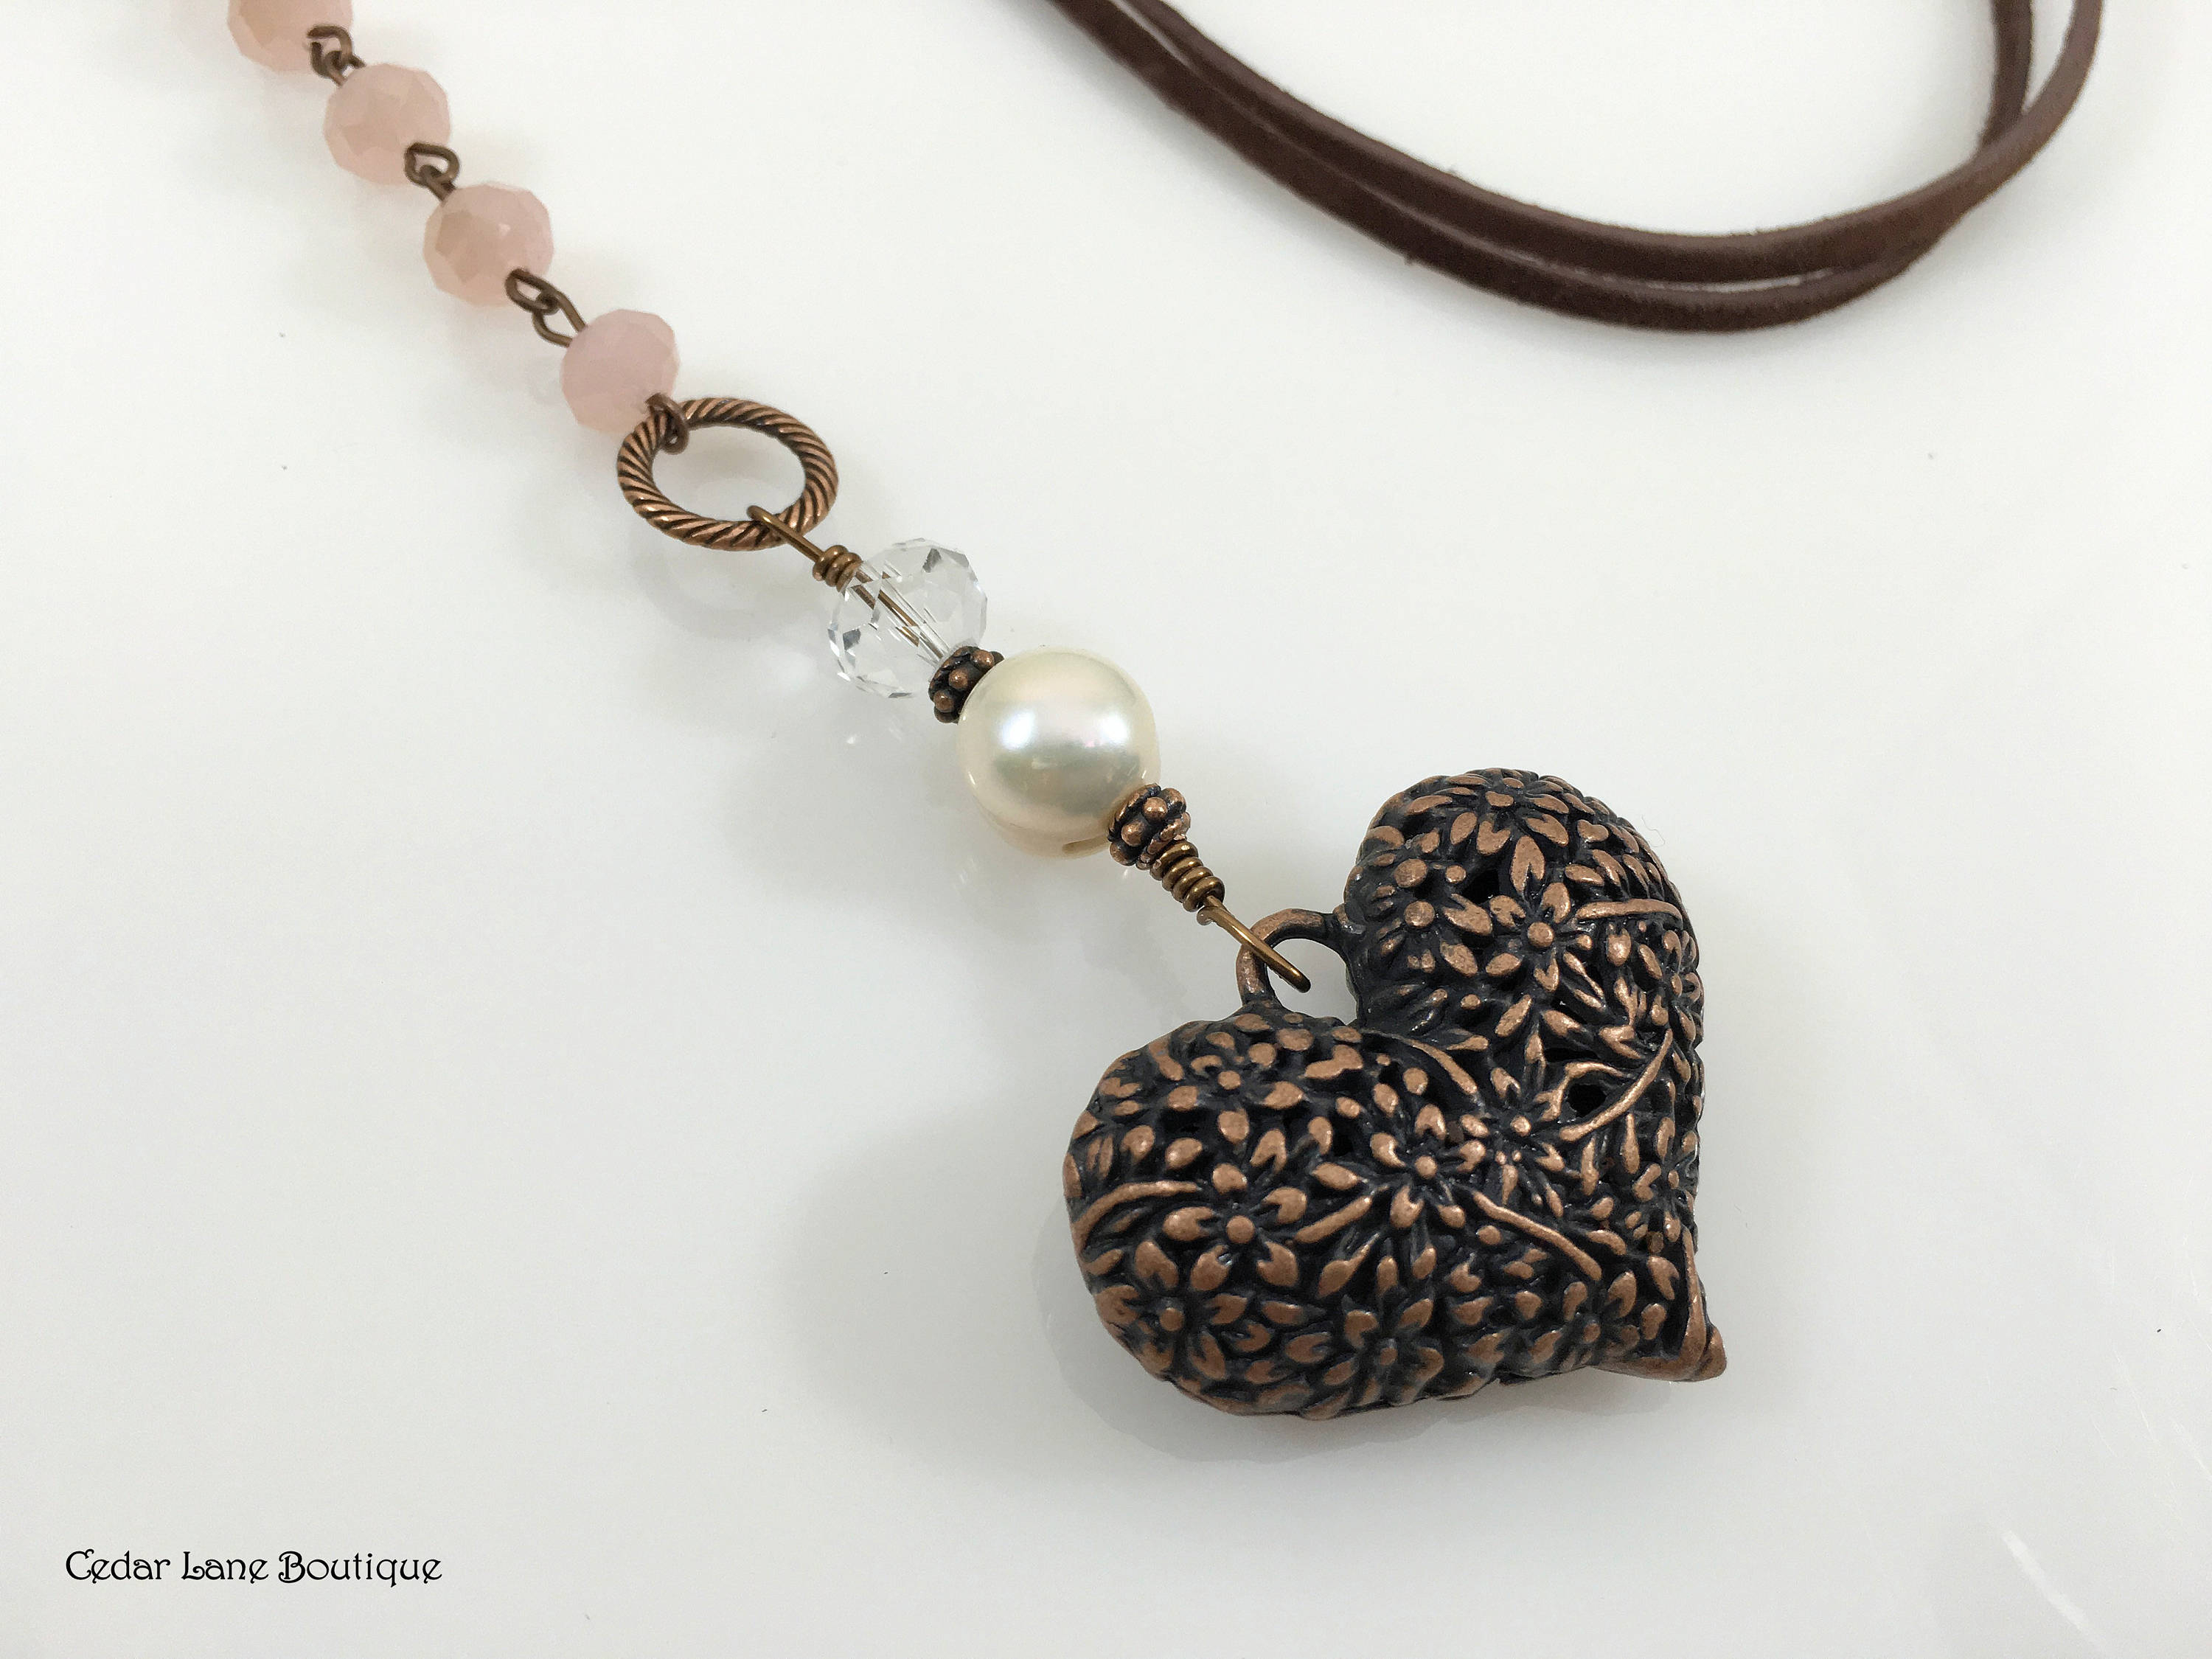 Heart Pendant Necklace/suede Long Necklace/pink Crystal Bead Chain/copper  Heart Pendant/bohemian Jewelery/casual Necklace/adjustable Length Throughout Most Up To Date Ornate Hearts Tassel Necklaces (Gallery 10 of 25)